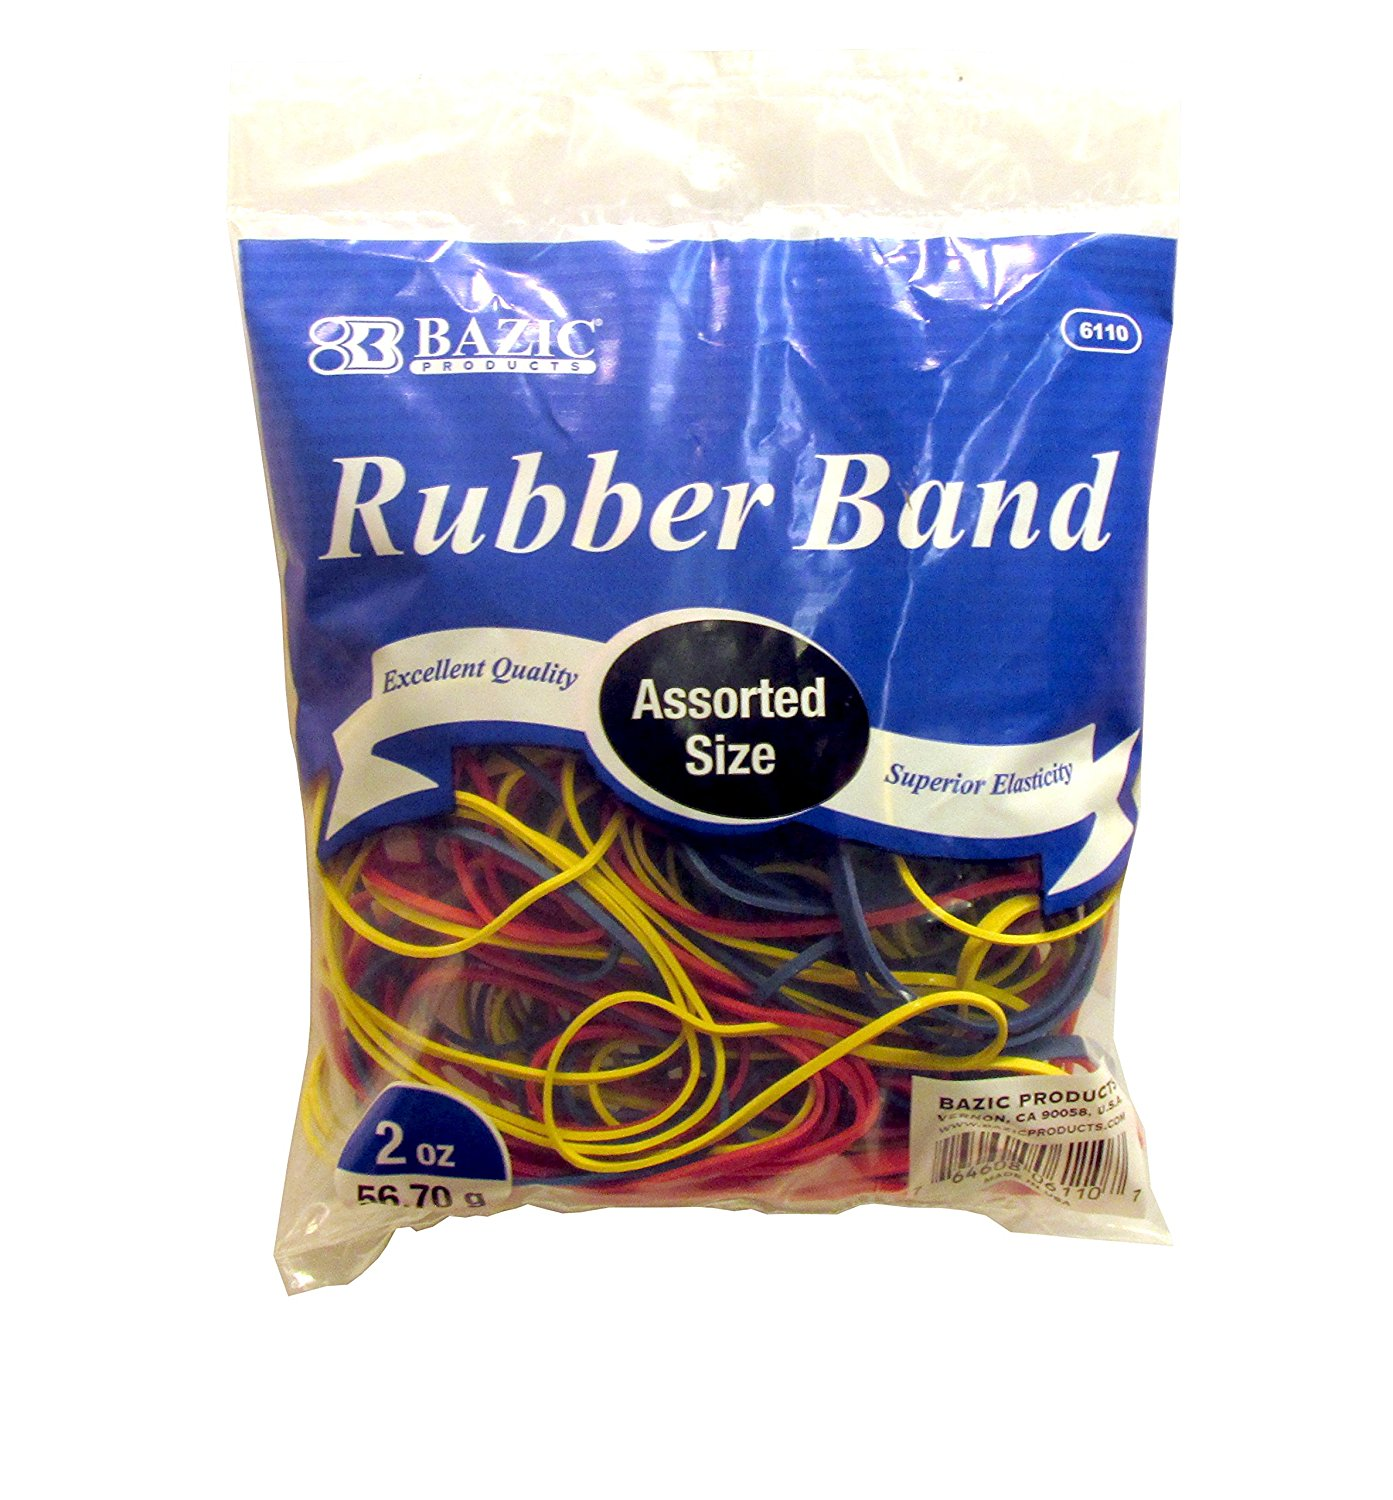 Assorted Rubber Bands, Multi Color, 227g/0.5 lbs. (Pack of 6), Assorted sizes, colors, and thickness. By Bazic